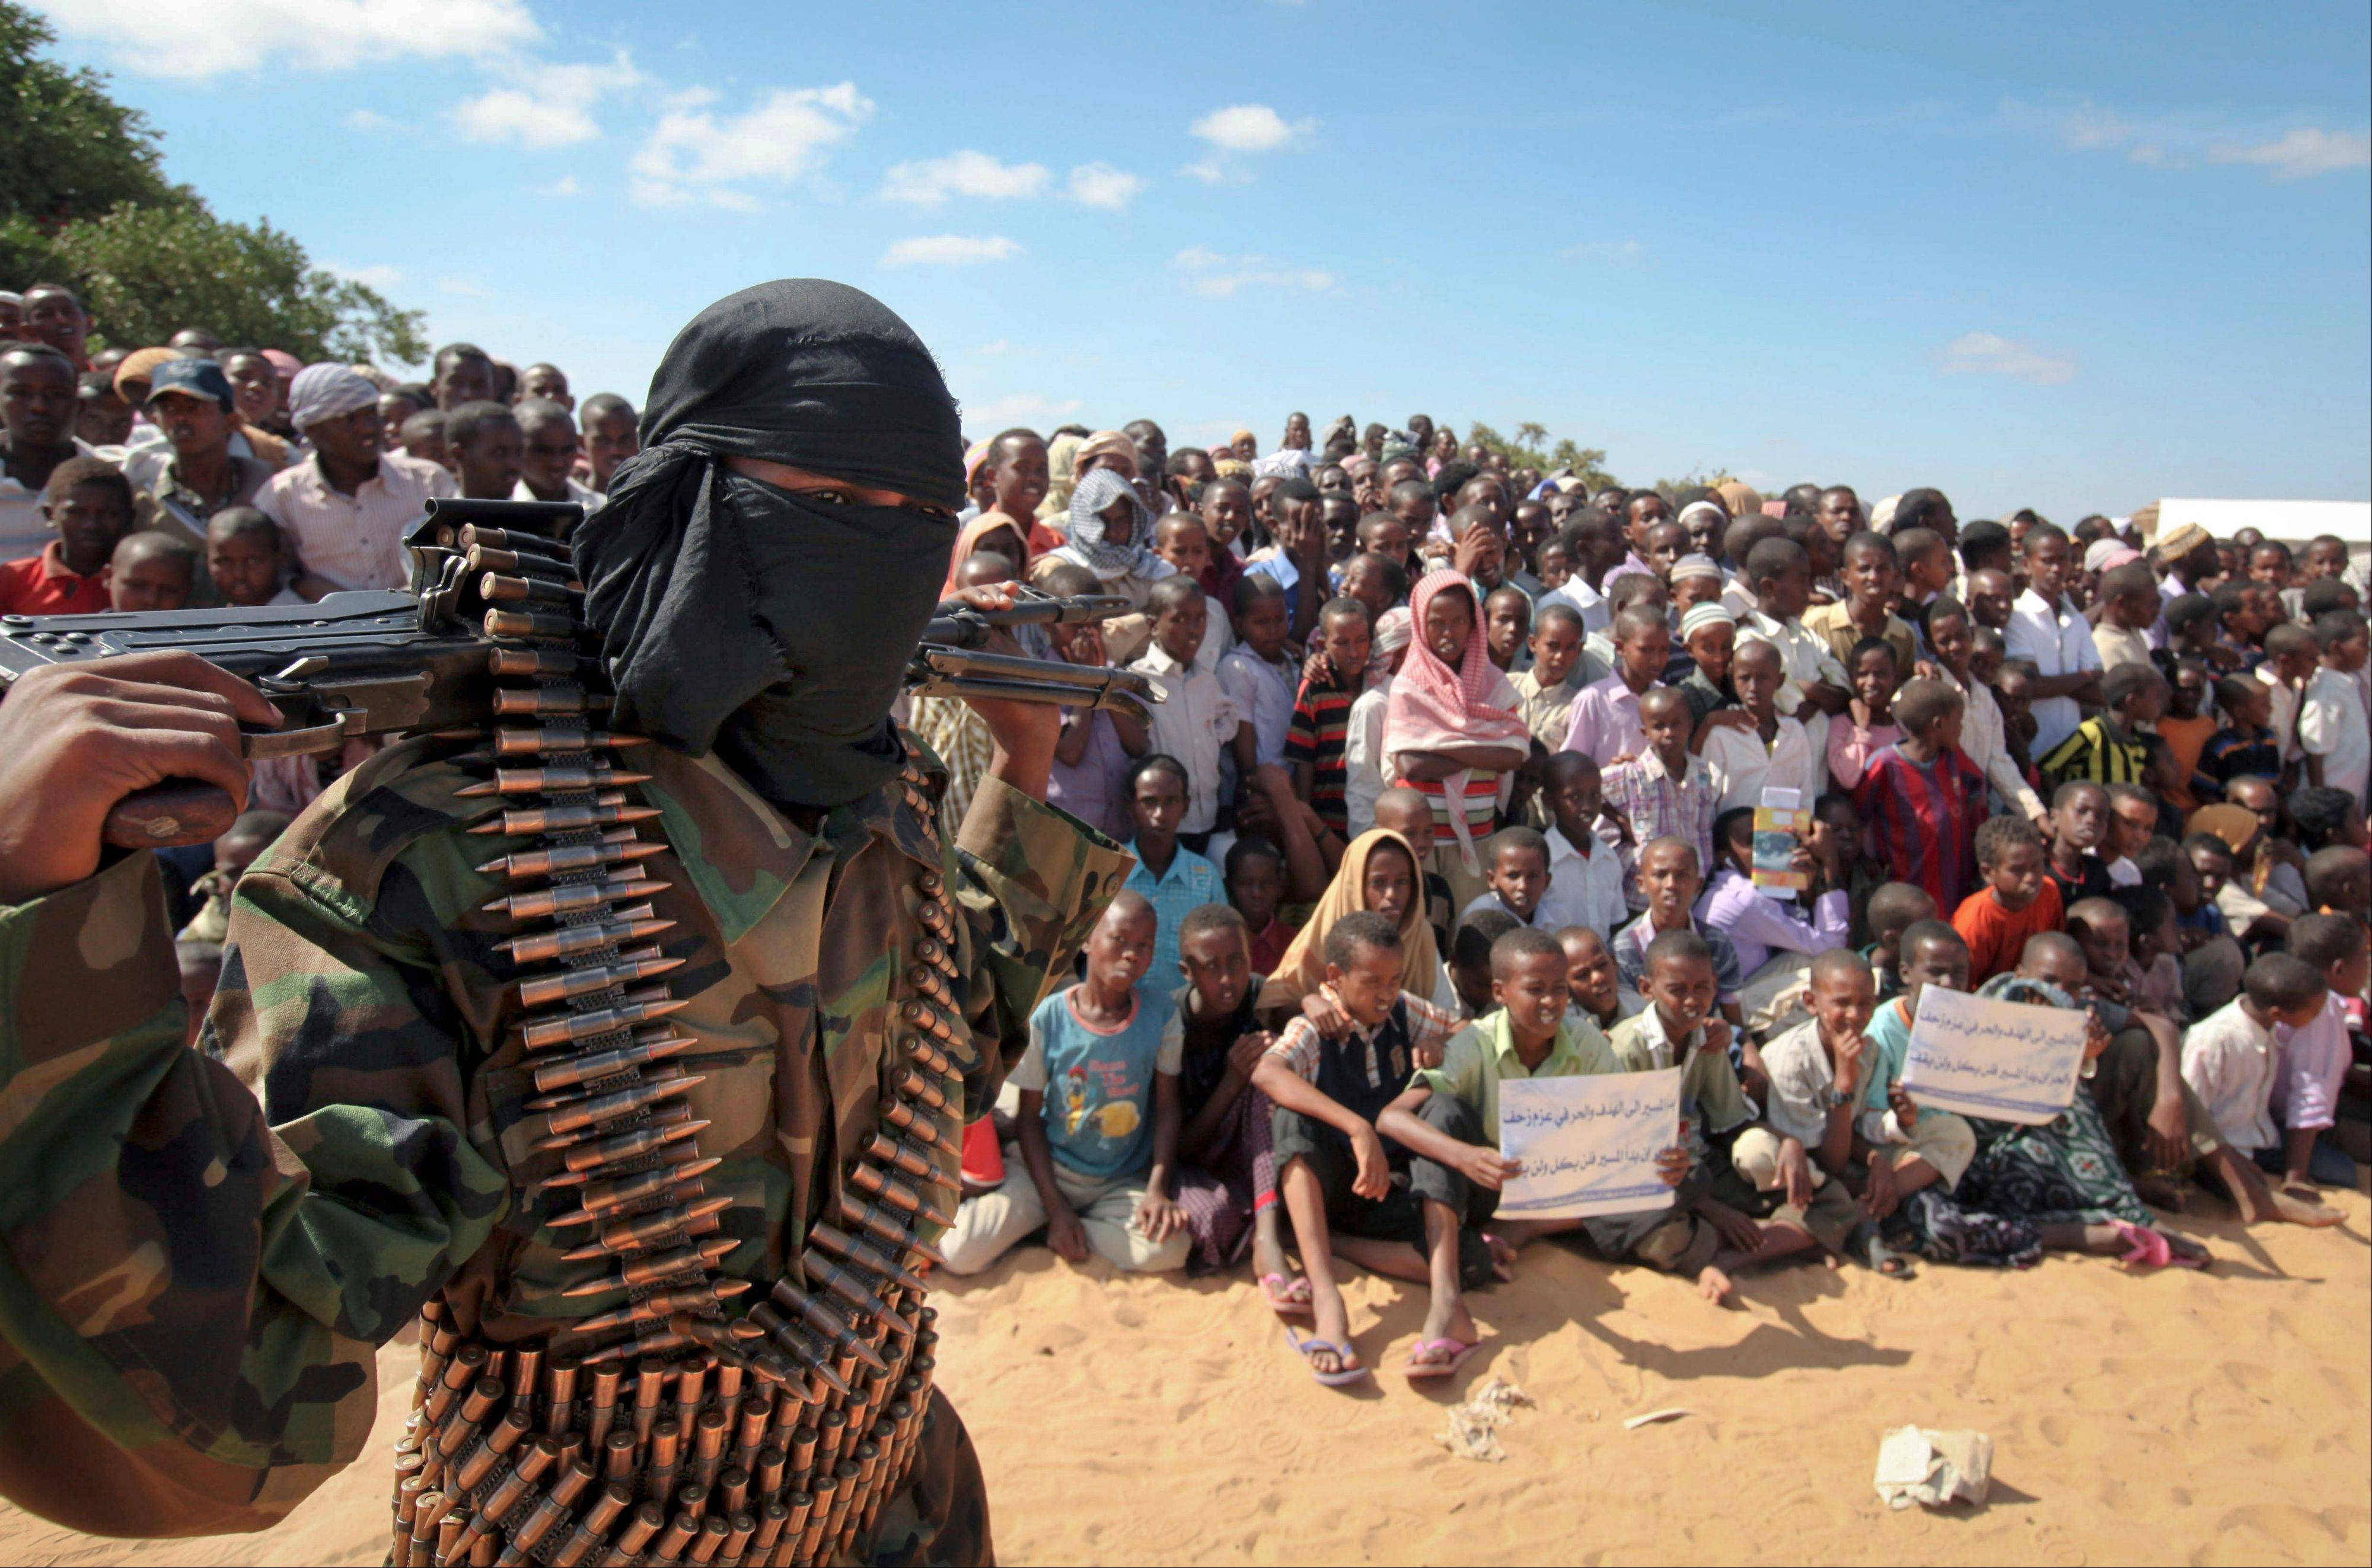 In this Feb. 13, 2012, file photo, an armed member of the militant group al-Shabab attends a rally on the outskirts of Mogadishu, Somalia. International military forces carried out a pre-dawn strike Saturday against foreign fighters in the same southern Somalia village where U.S. Navy SEALS four years ago killed a most-wanted al-Qaida operative, officials said.